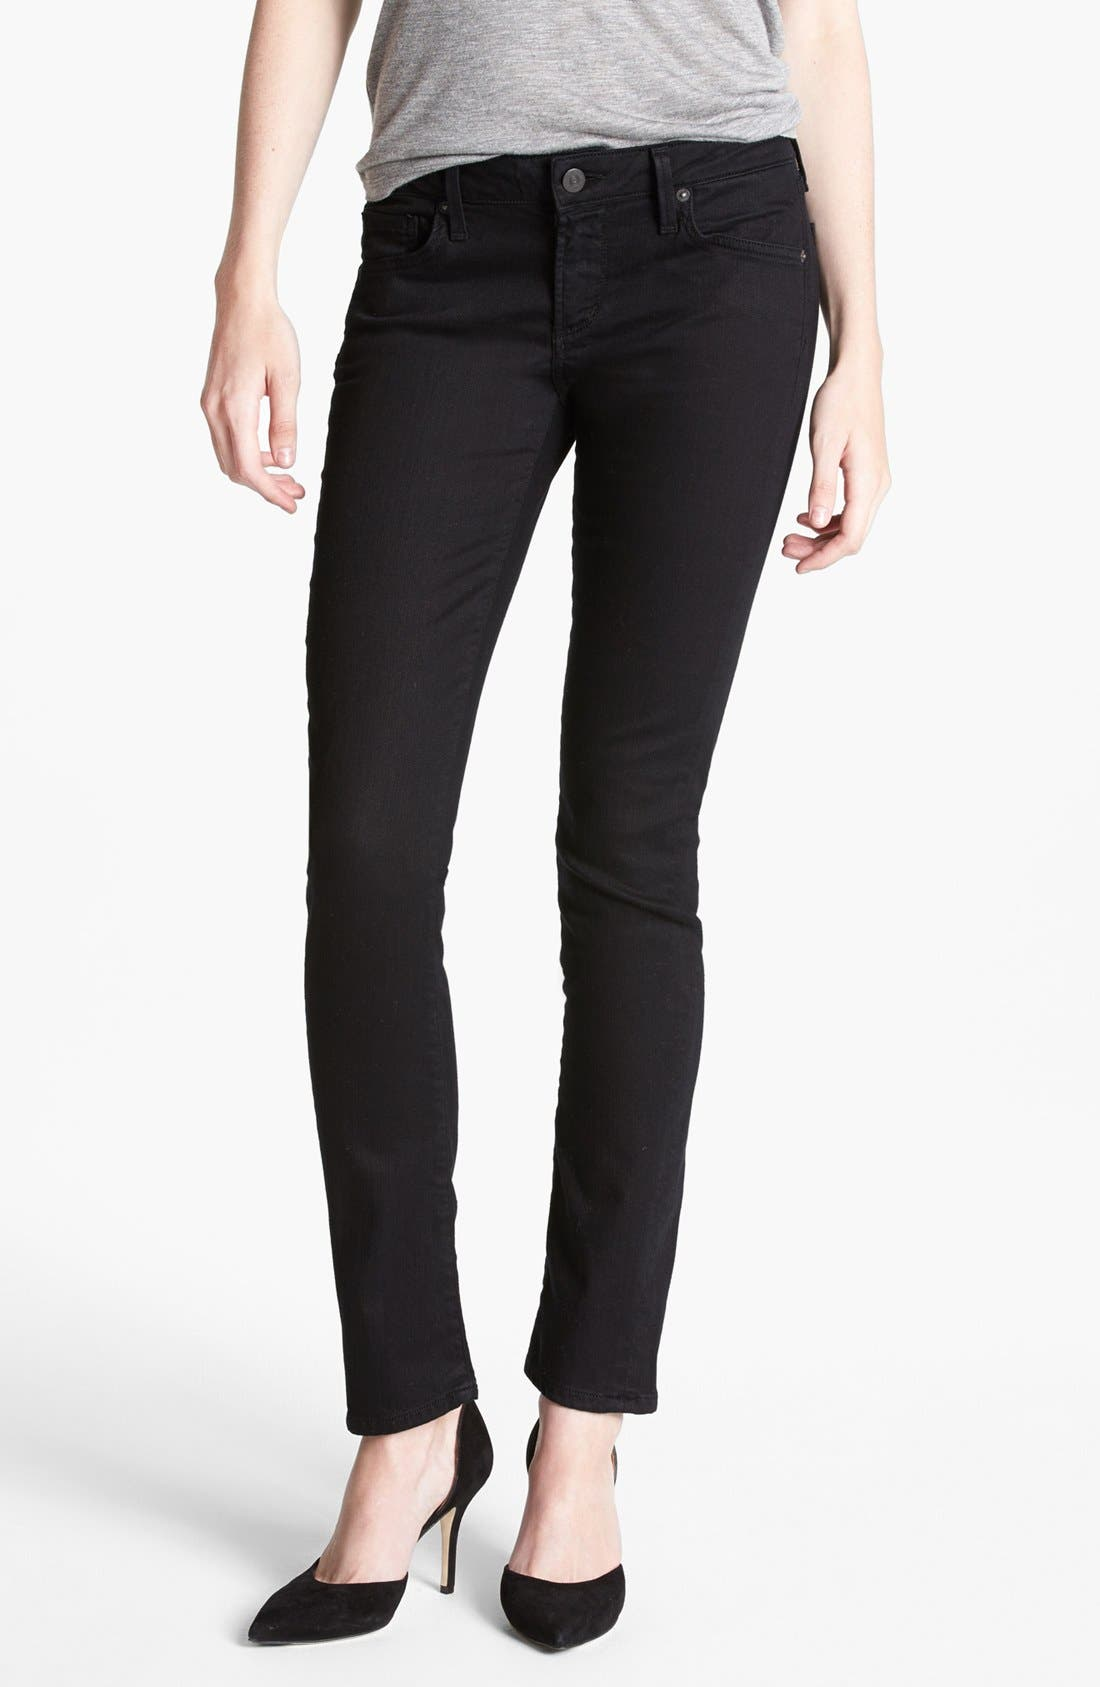 Alternate Image 1 Selected - Citizens of Humanity 'Racer' Low Rise Skinny Jeans (Black Diamond)